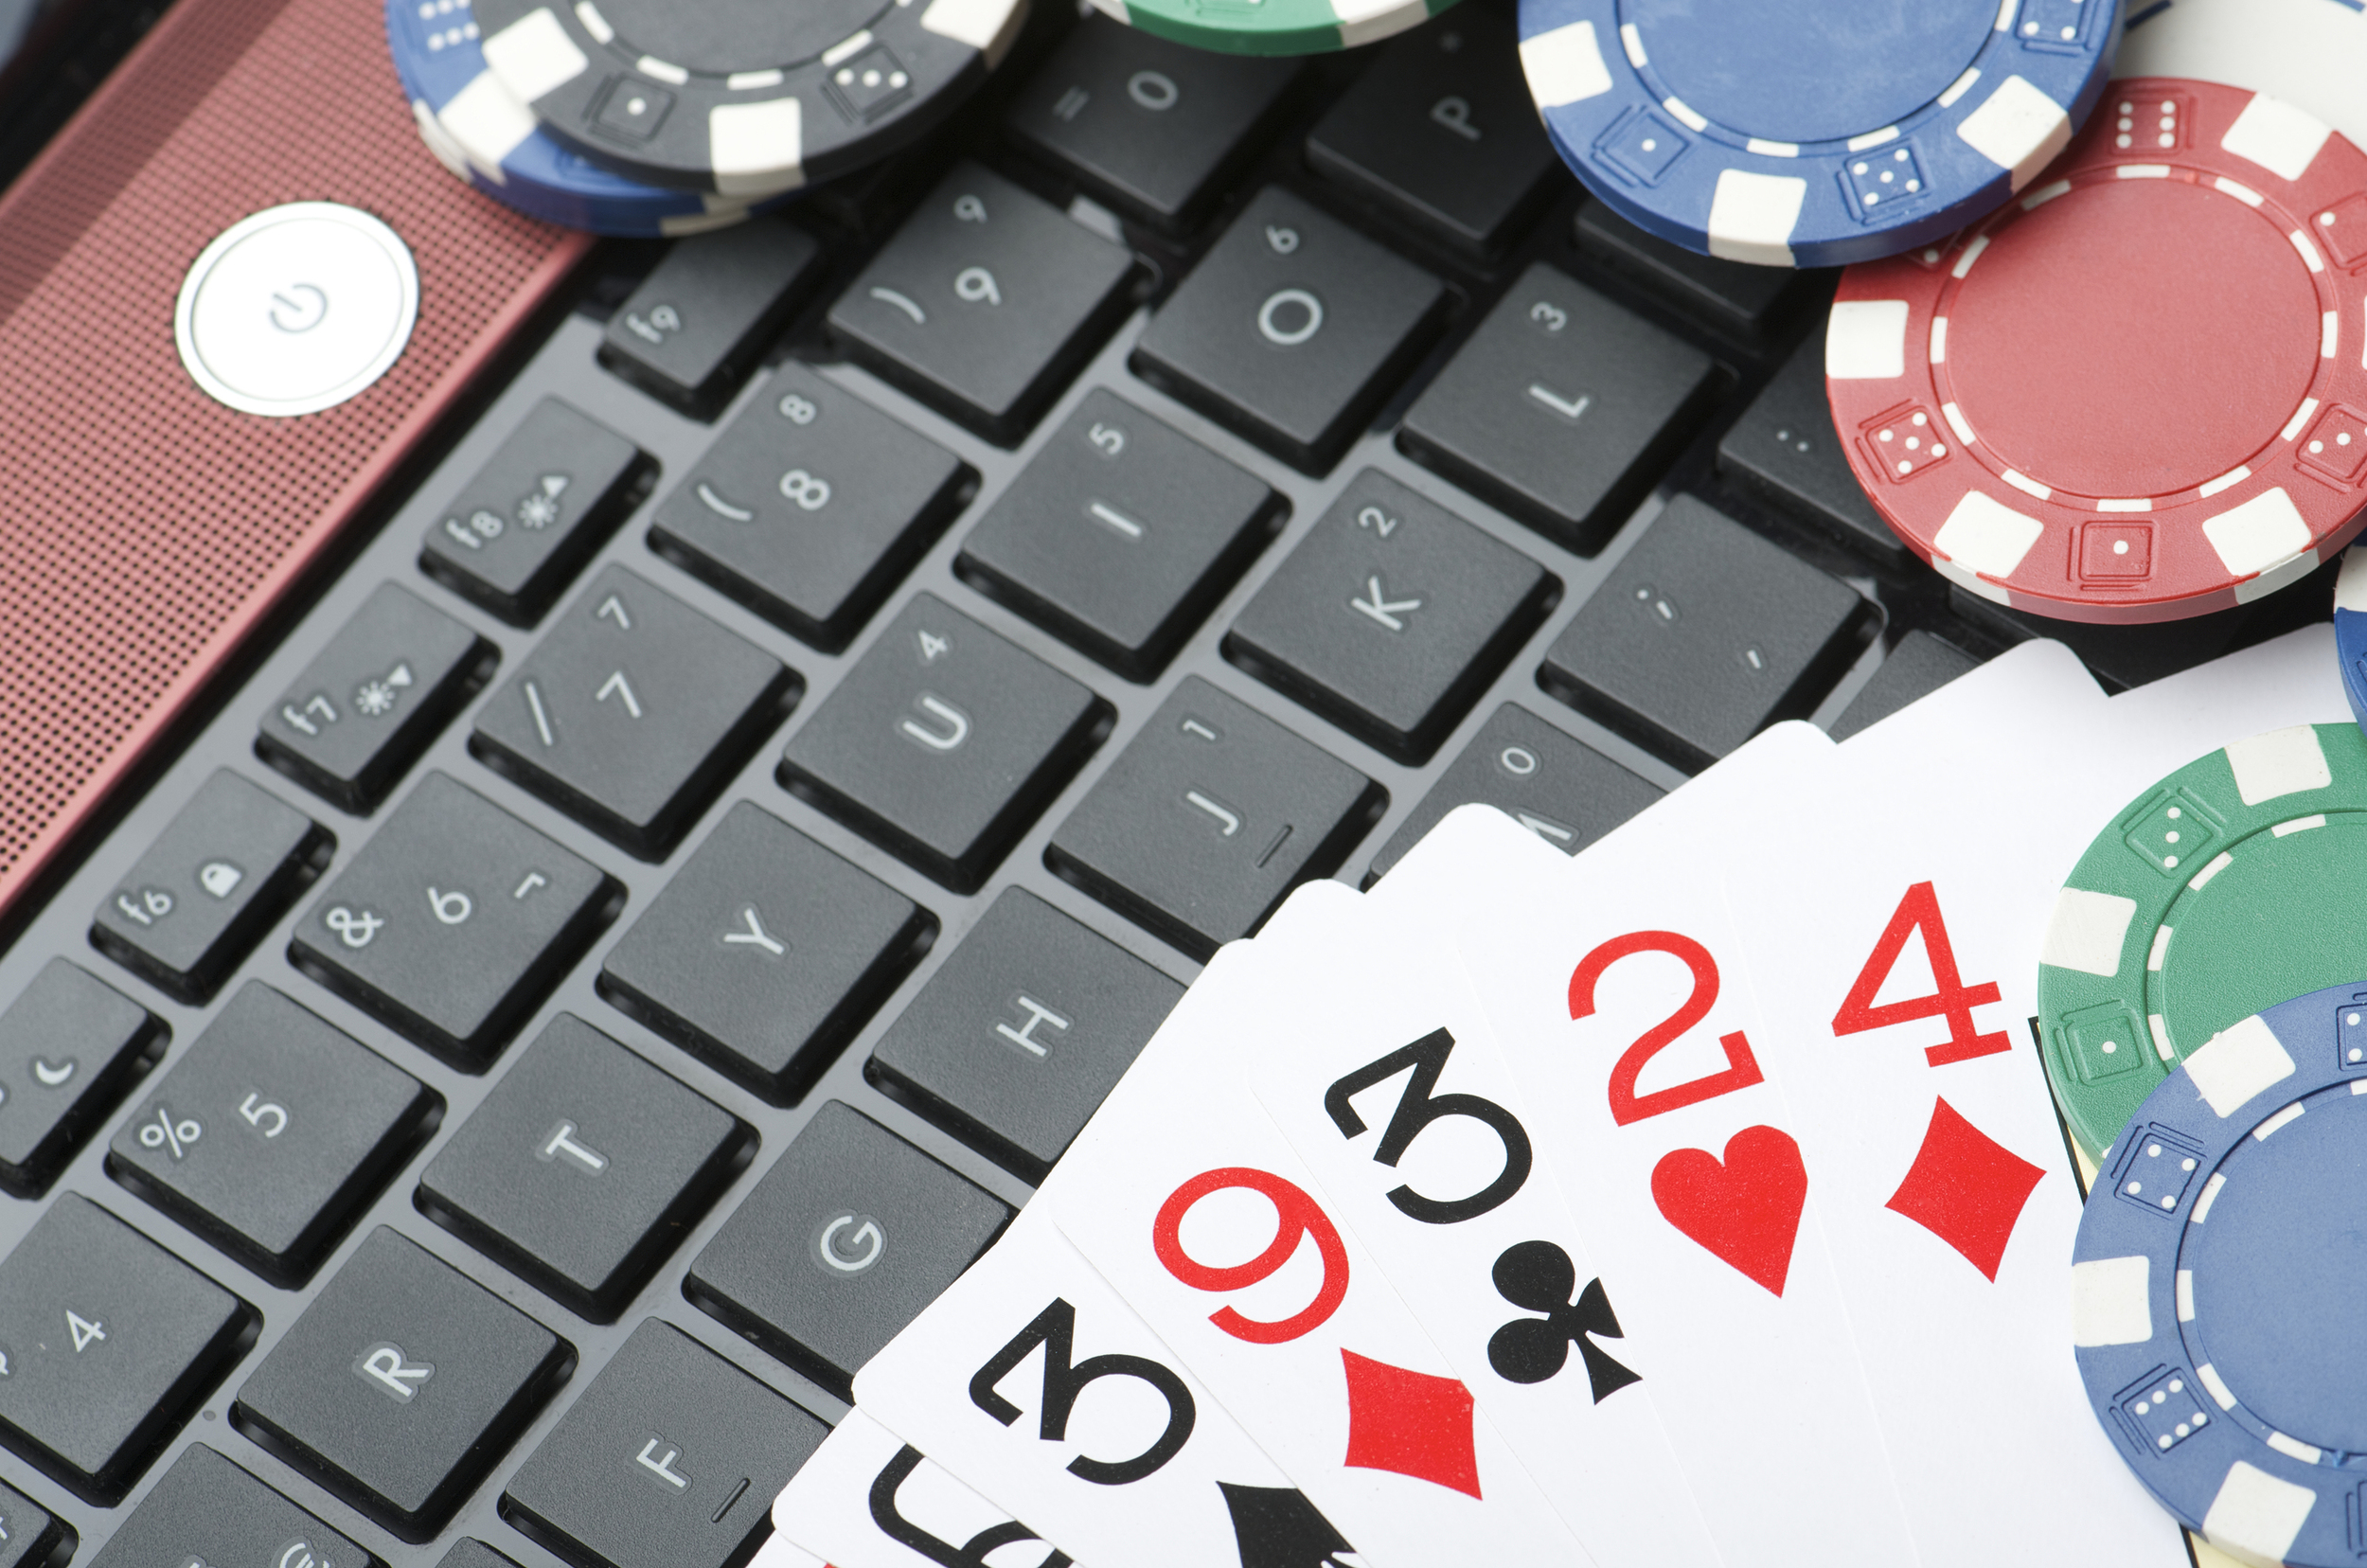 bigstock-view-of-casino-chips-and-cards-56736413.jpg